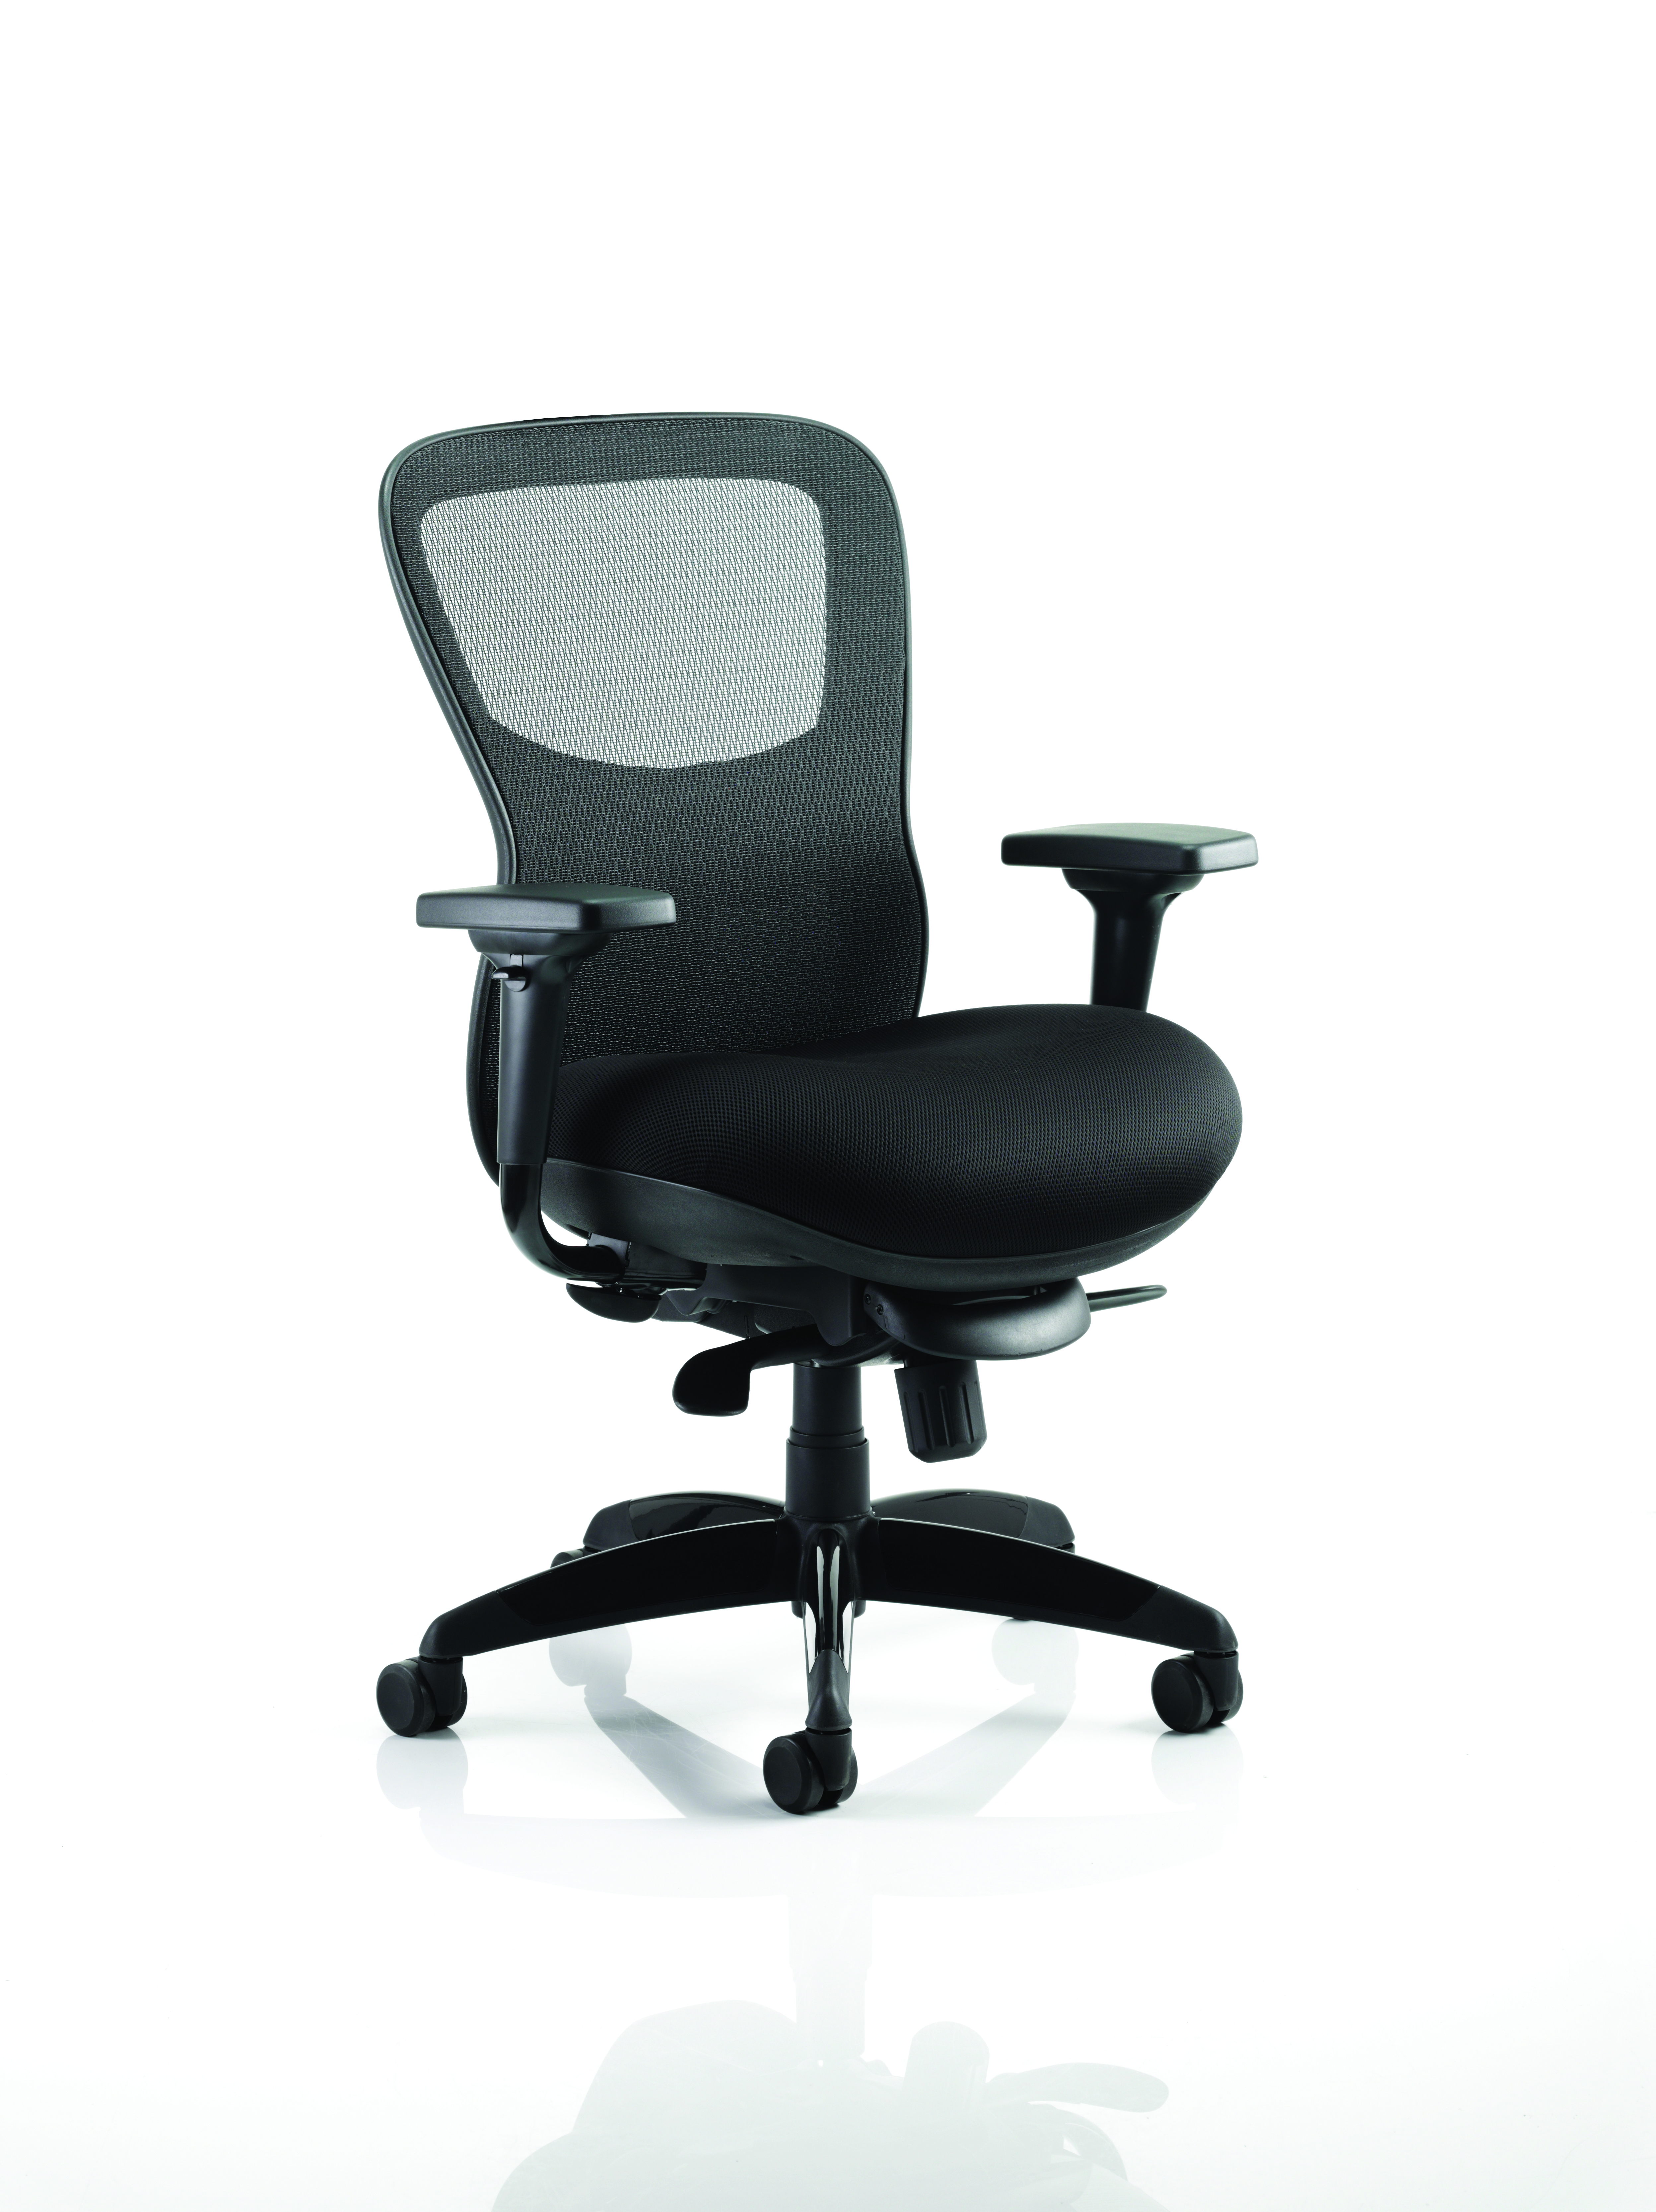 Desk Chairs Stealth Chair Airmesh Seat And Mesh Back PO000019